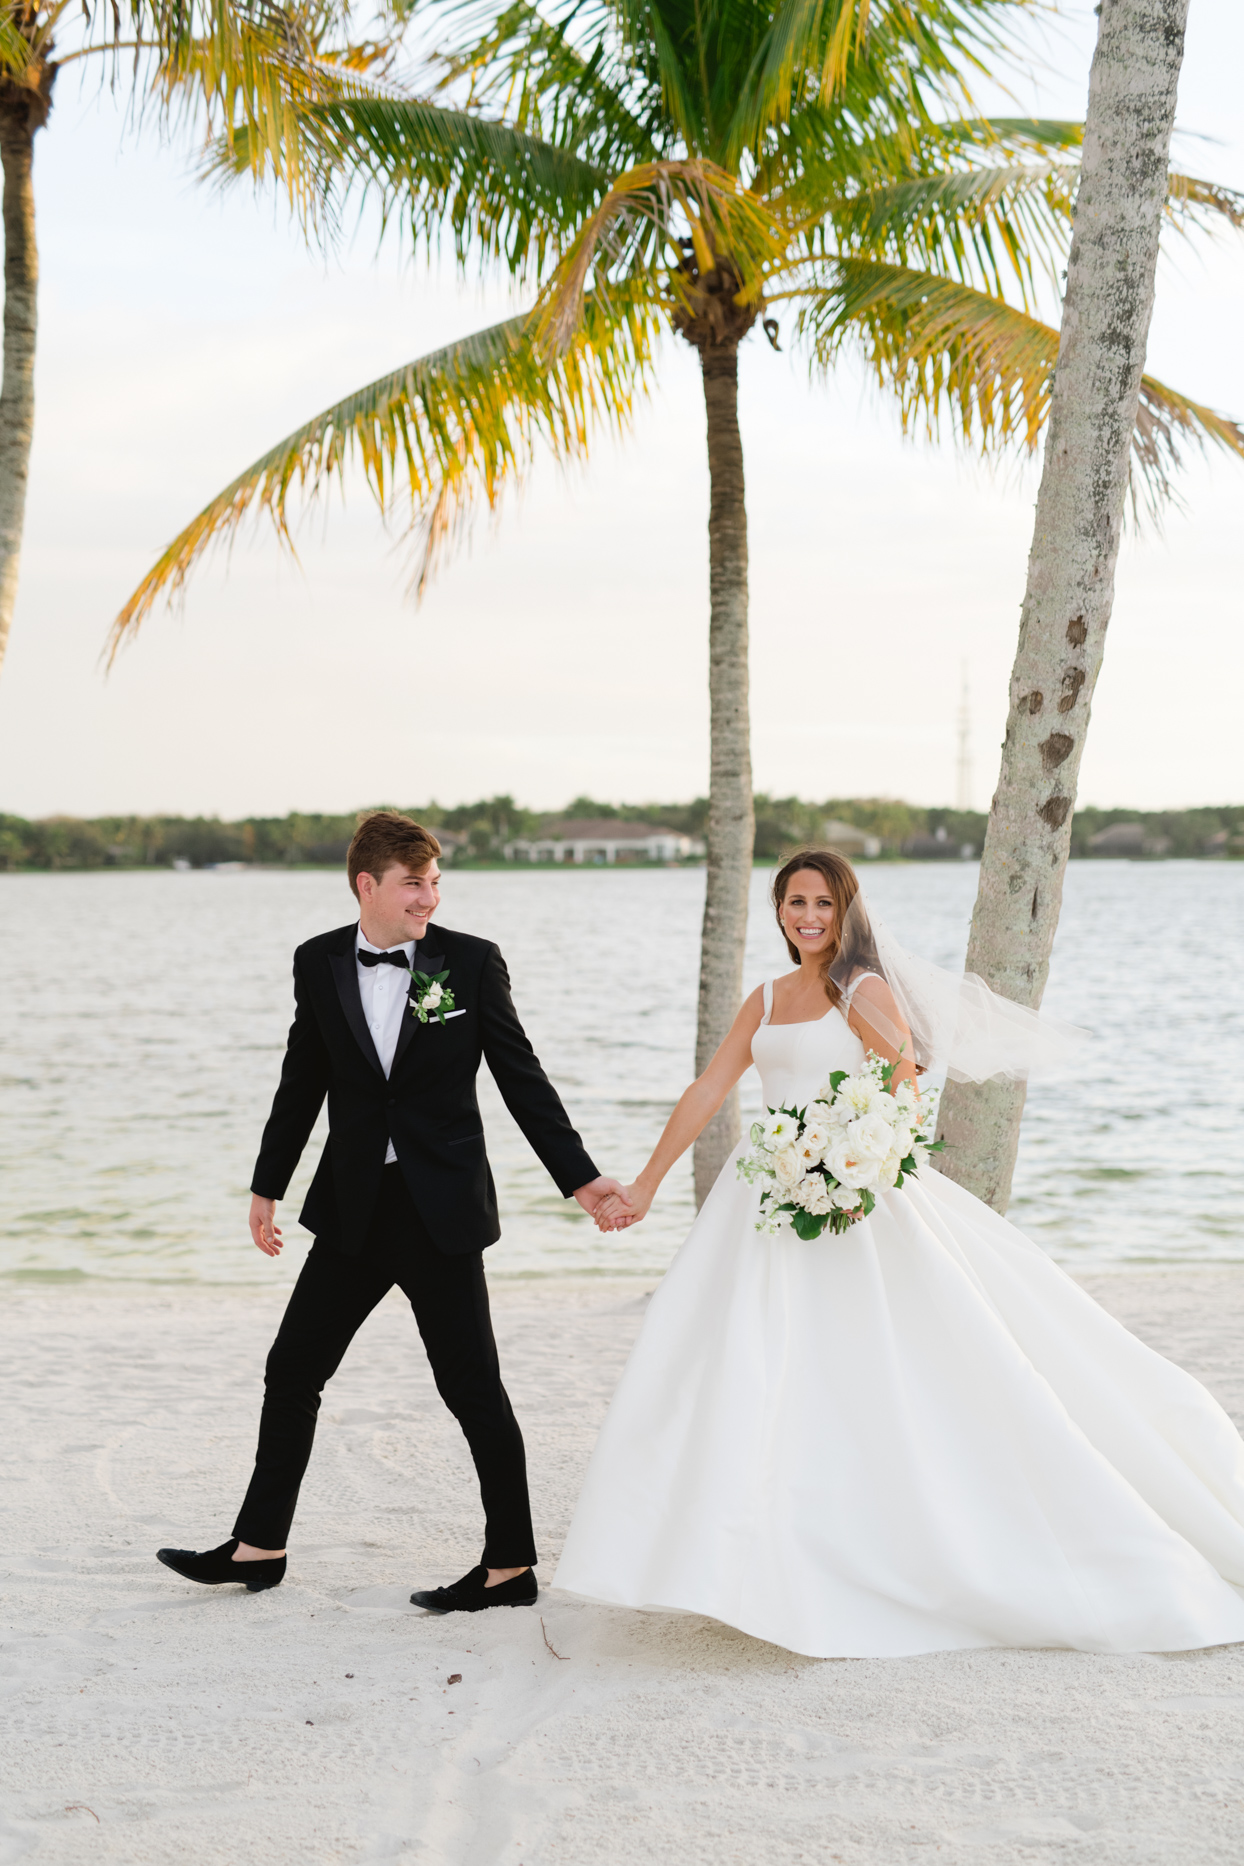 couple walking along beach with palm trees behind